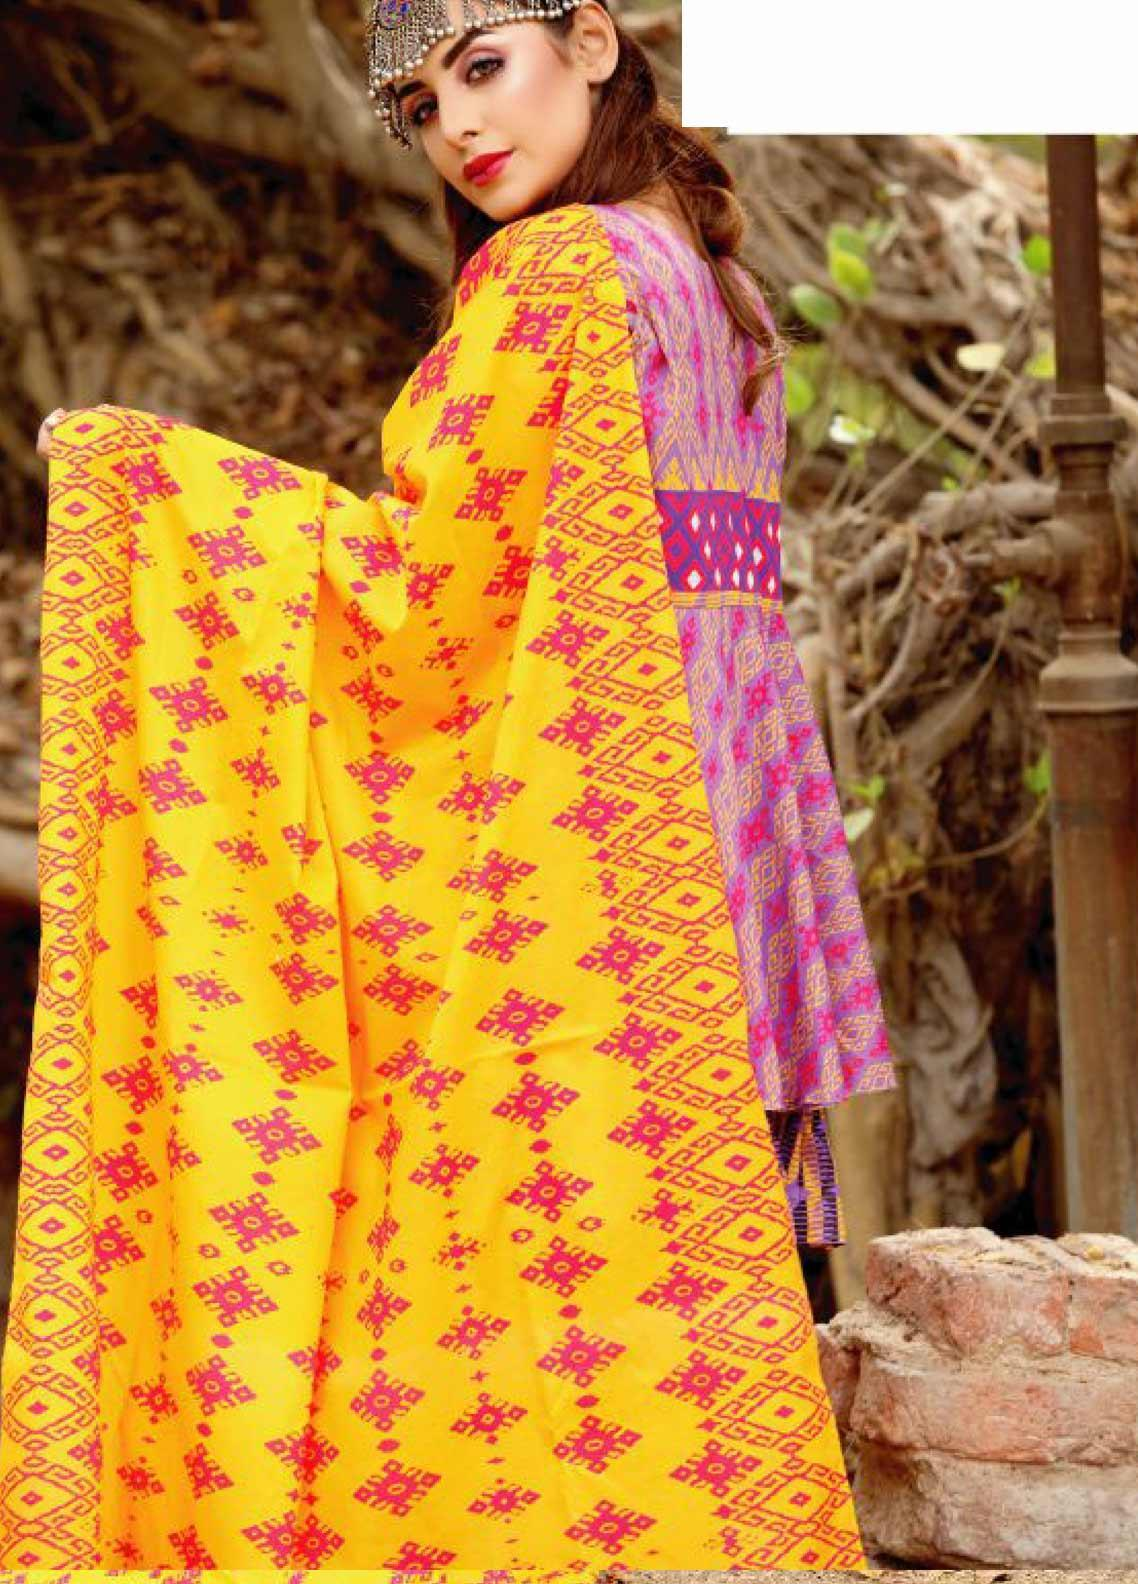 Fateh Stores: Fateh Women Clothing | Fateh Men Collection